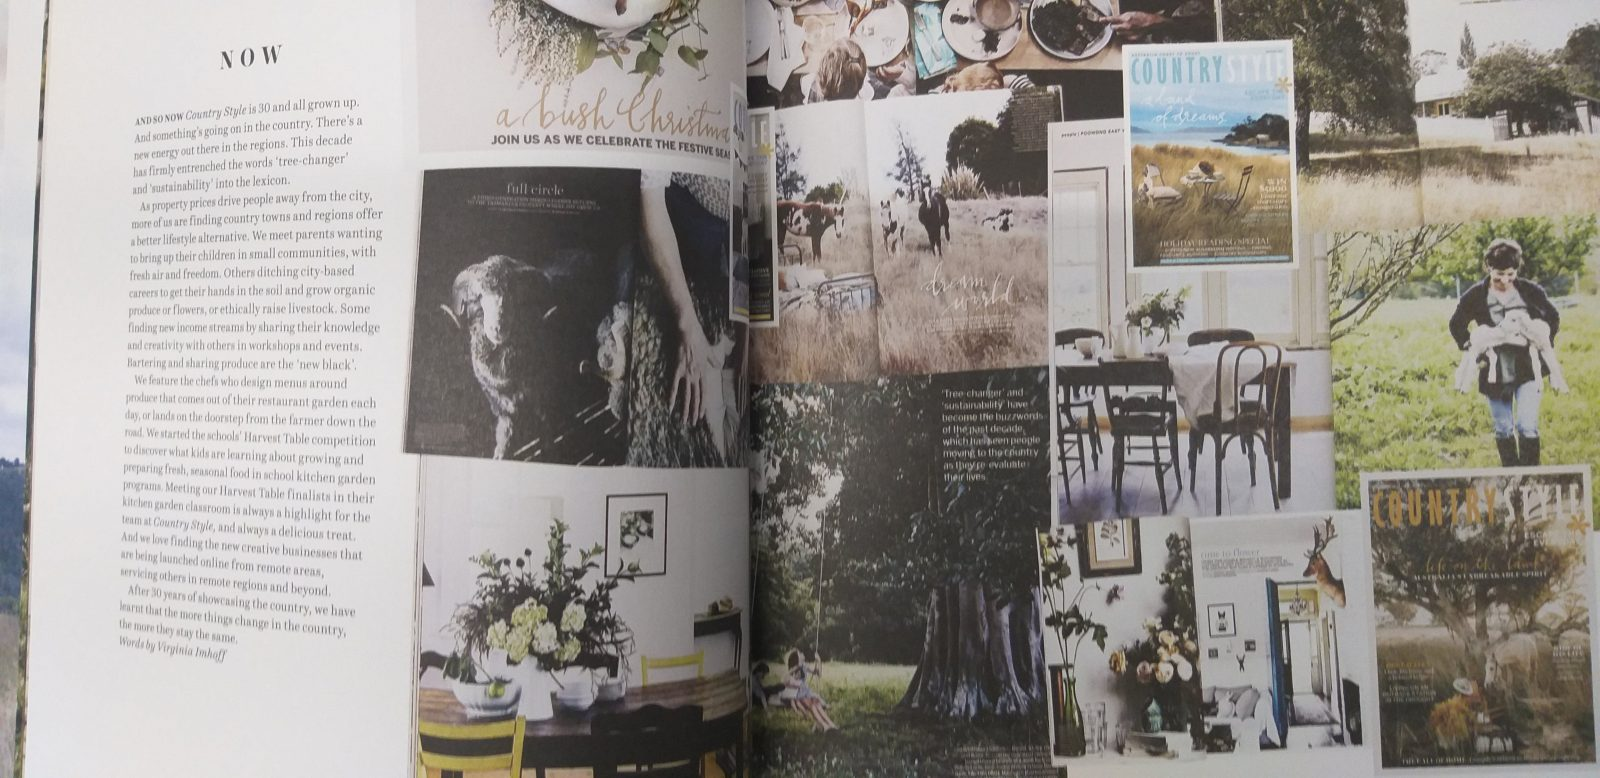 Open pages of a book showing photos of magazine covers, homes and rural scenes.